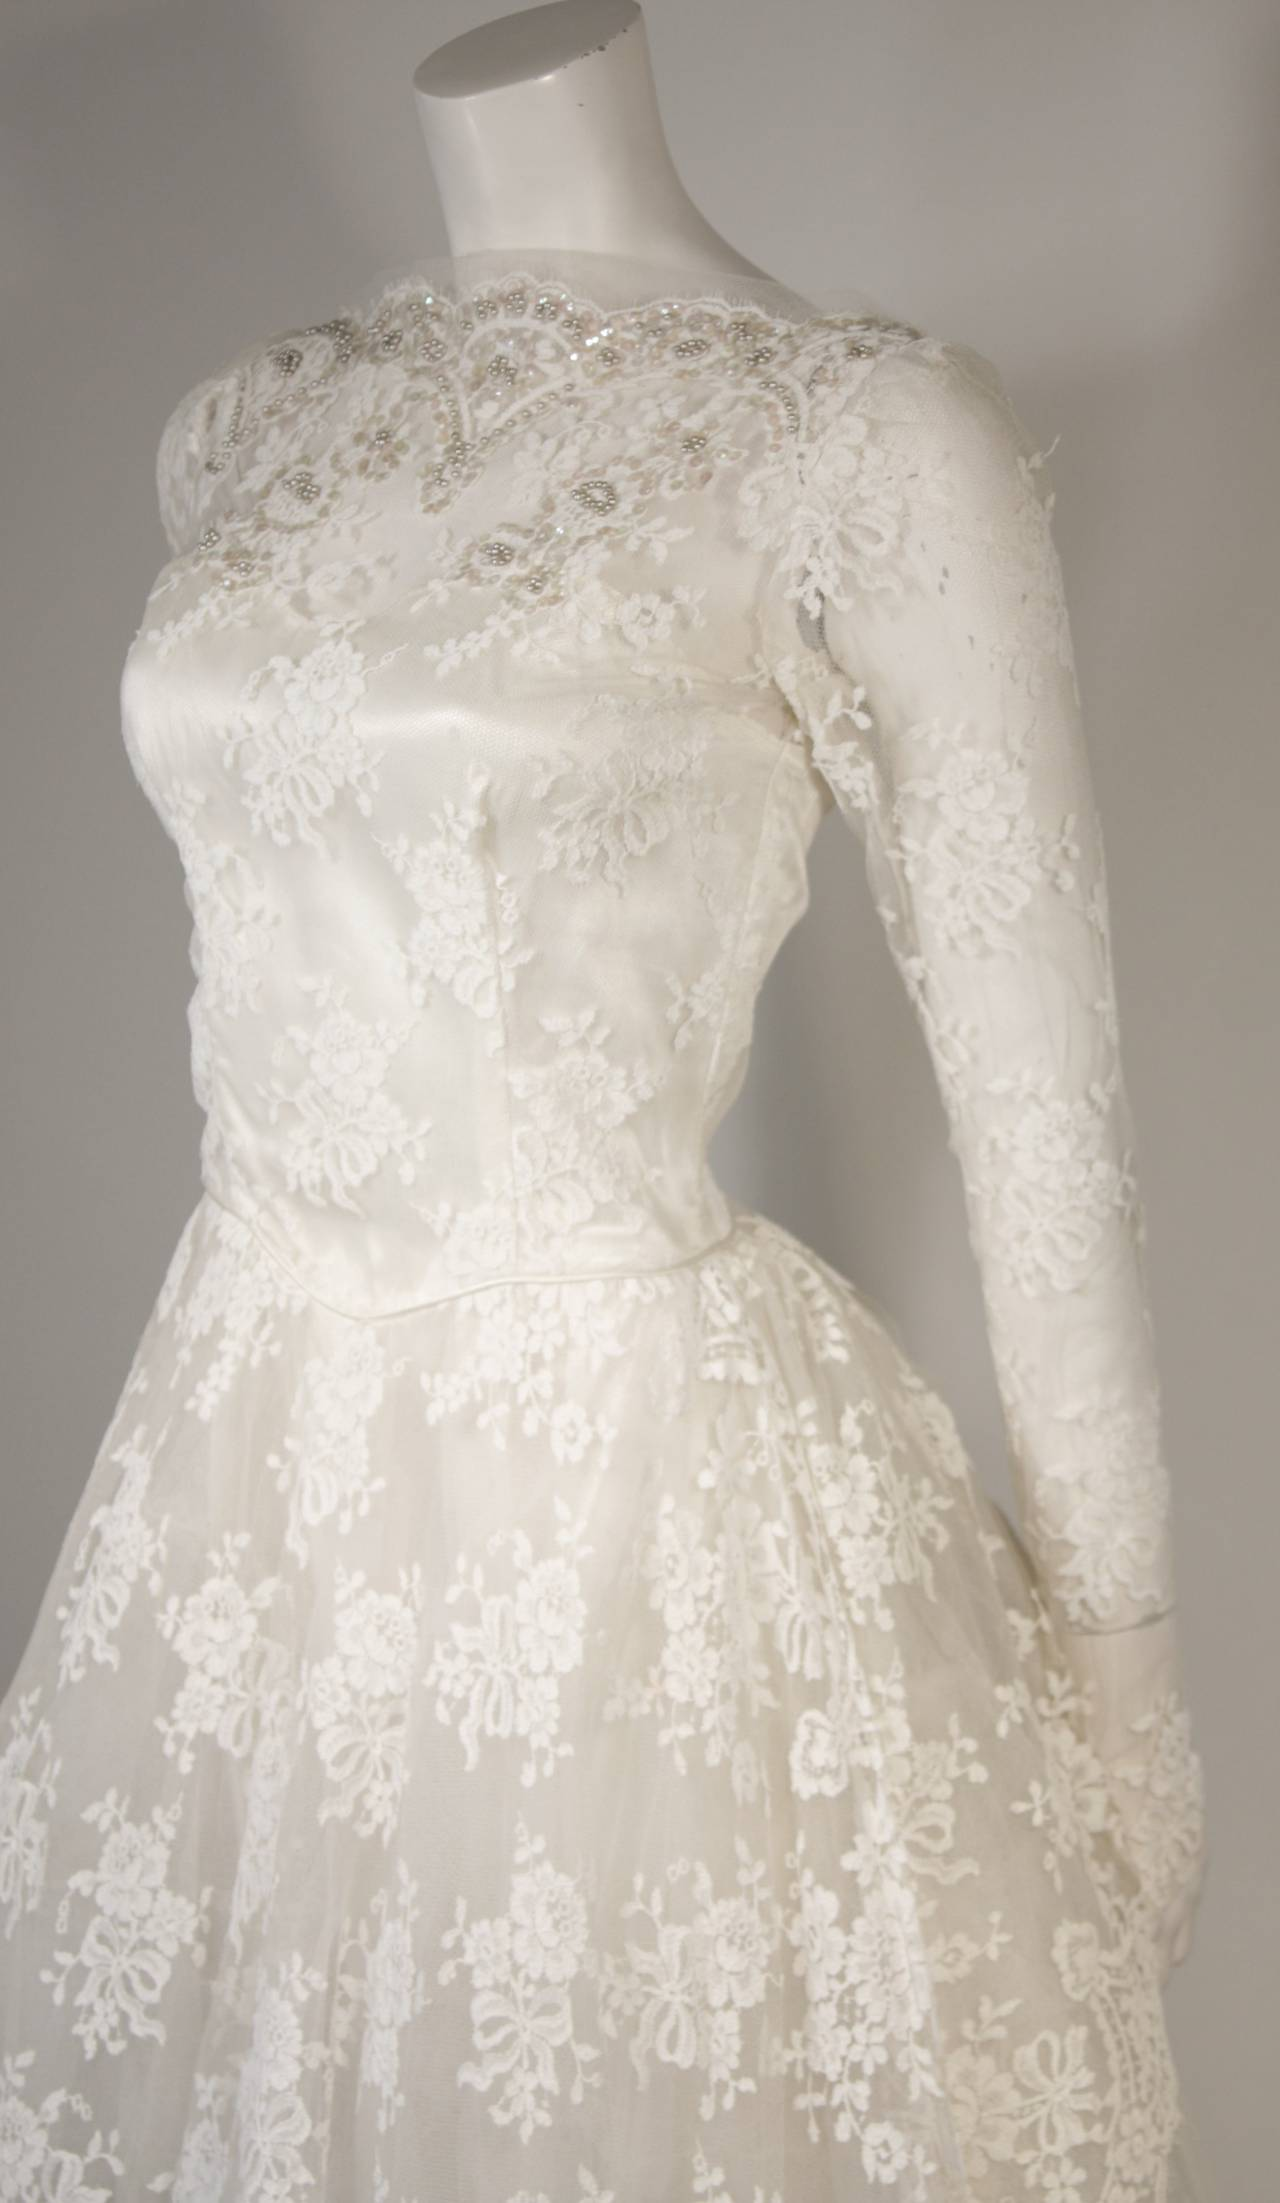 Vintage Lace Wedding Gown with Scalloped Edges and Long Sleeves Size Small In Excellent Condition For Sale In Los Angeles, CA